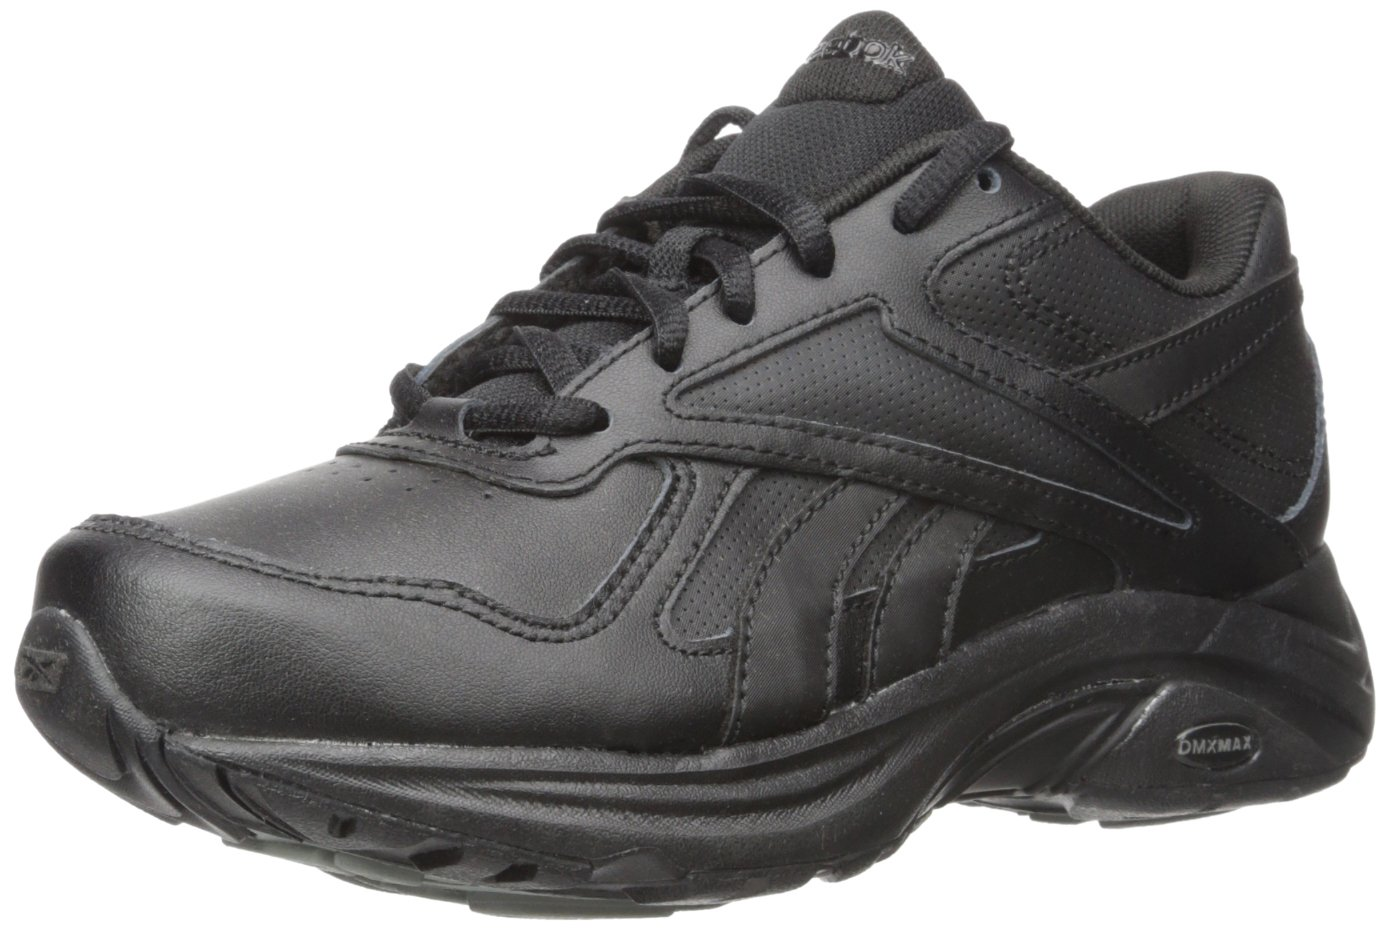 Reebok Women's Ultra V DMX Max Walking Shoe B01AKN60PA 9 B(M) US|Black/Flat Grey